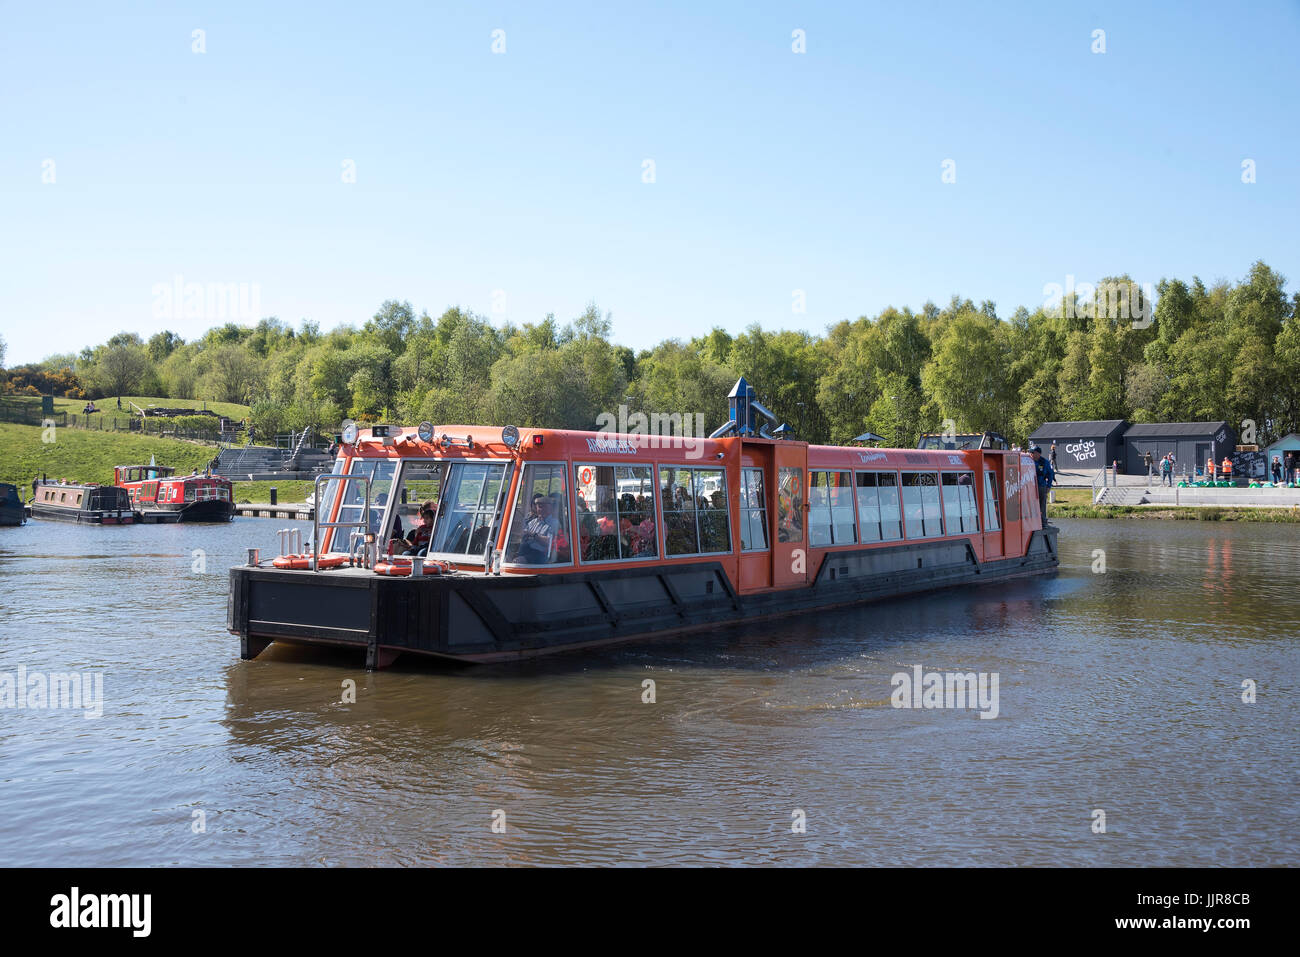 Boat trip visitor attraction on the Forth & Clyde and Union canals at the Falkirk Wheel. - Stock Image